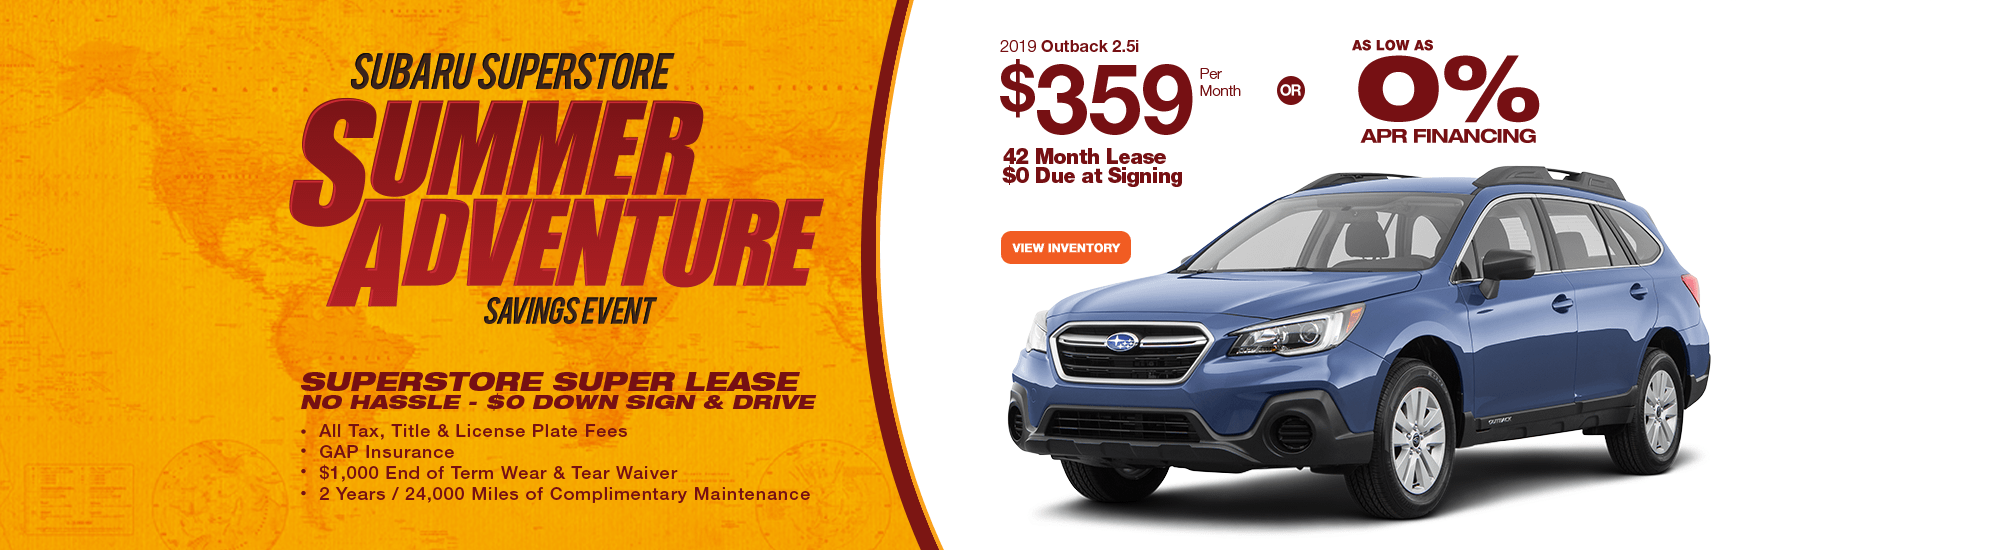 Save with our new leasing and financing special savings on 2019 Subaru Outback 2.5i near Surprise, AZ